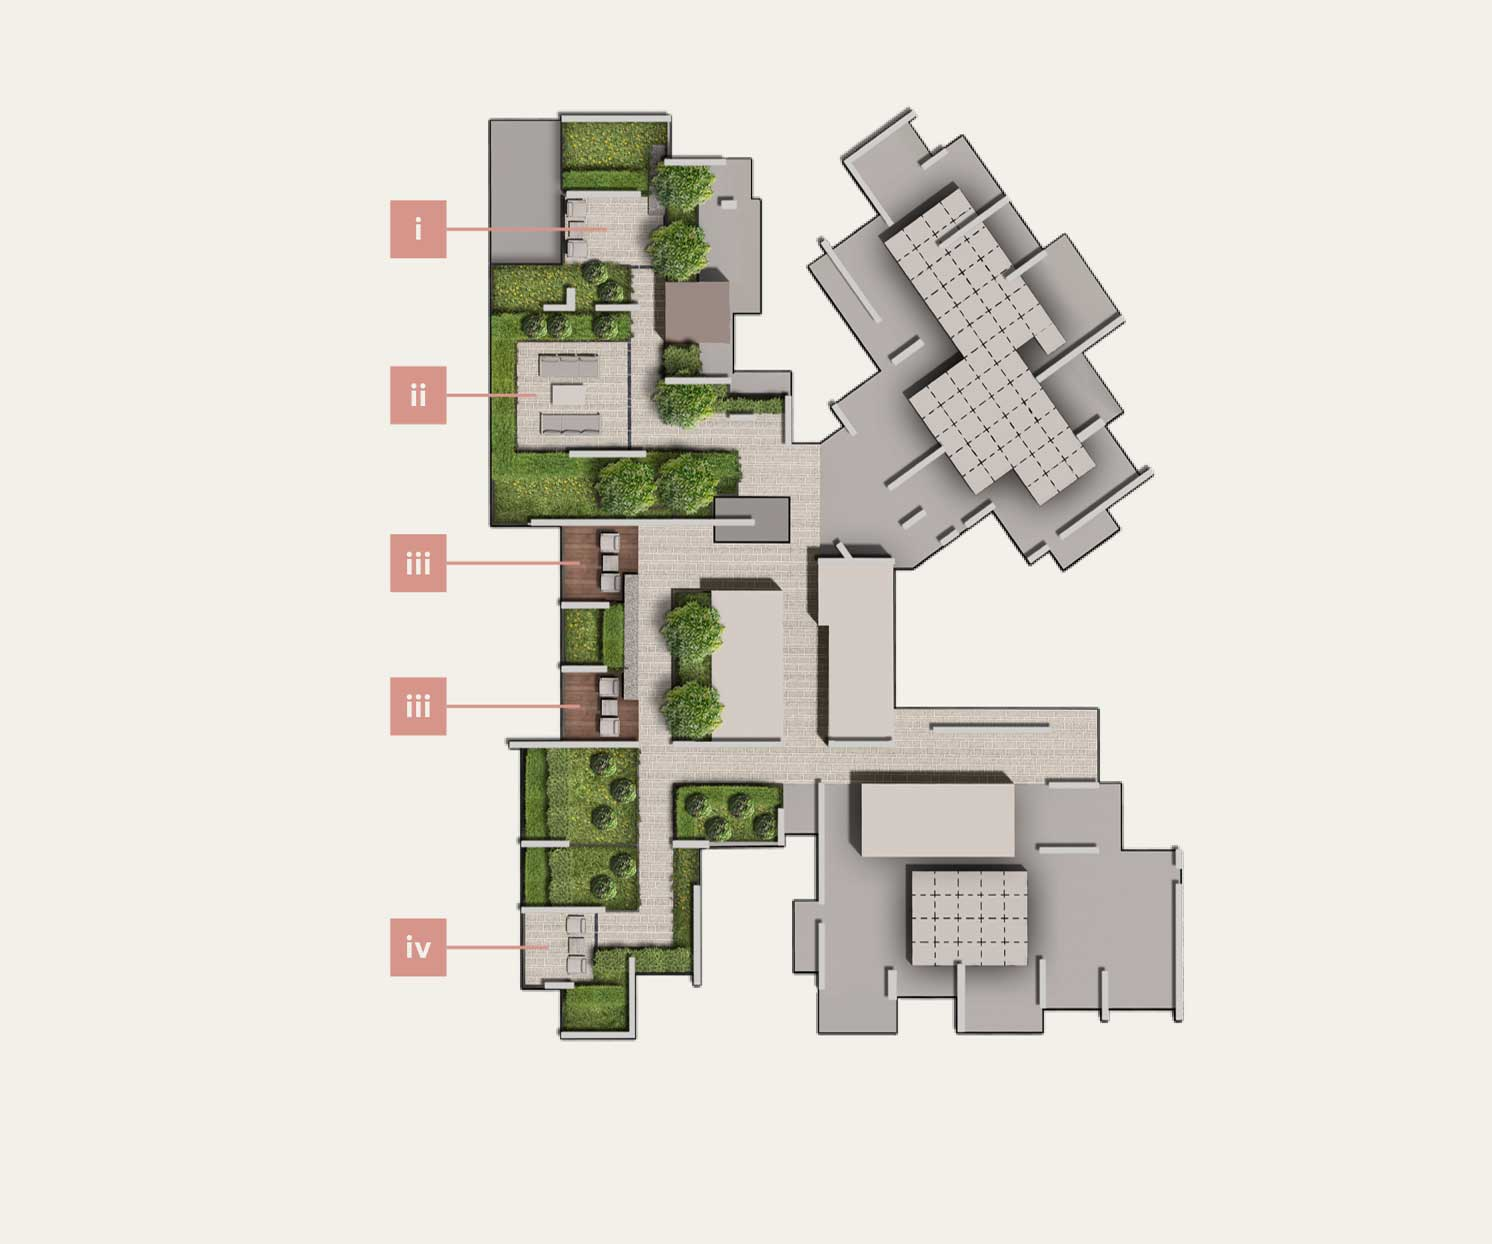 The avenir site plan